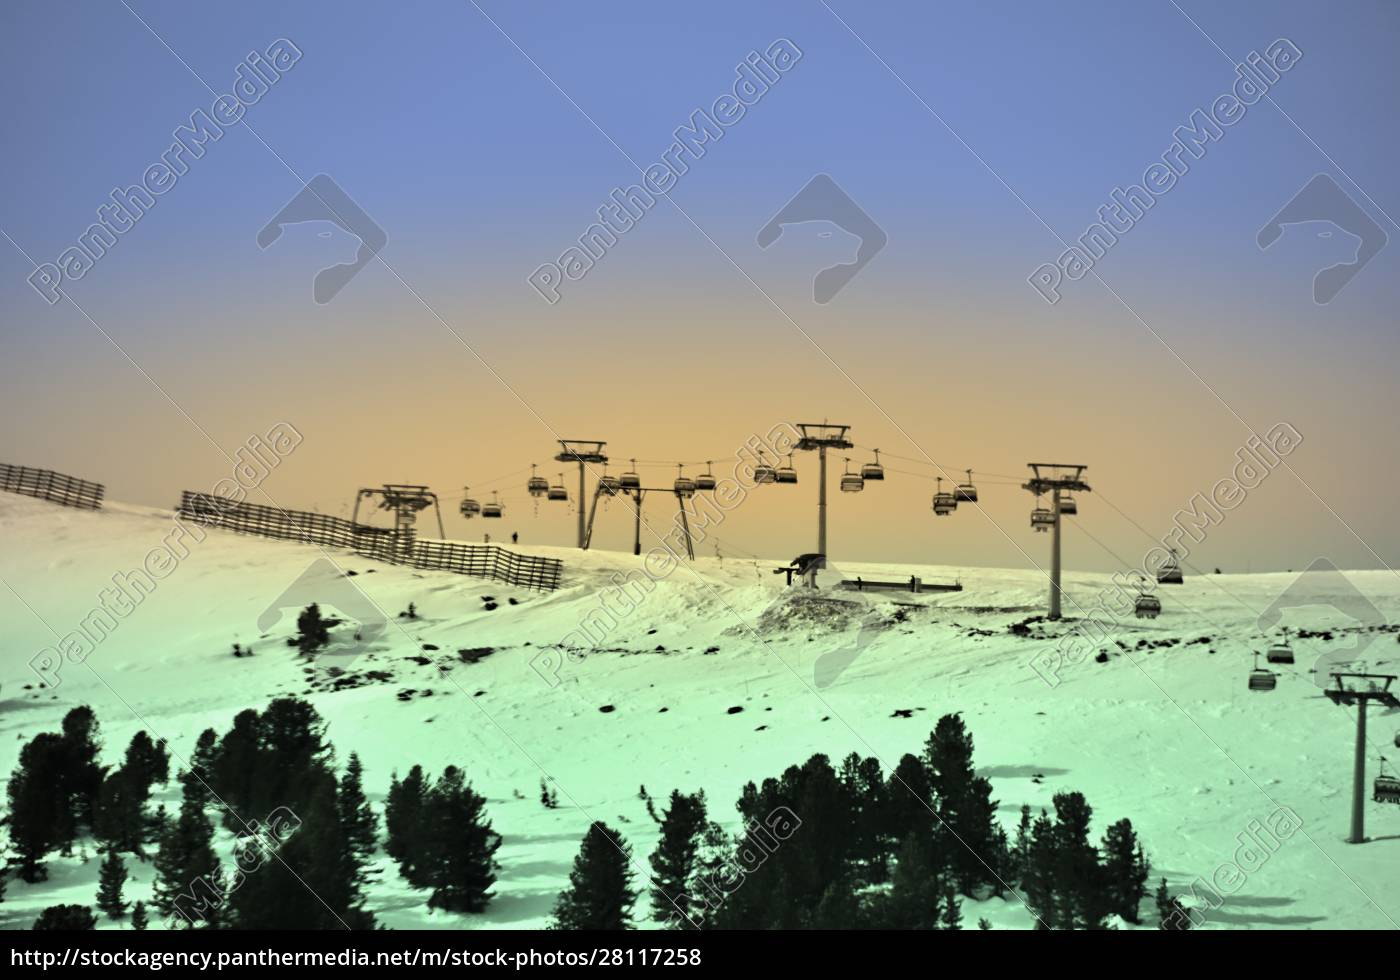 skiing, insouthern, tyrol - 28117258